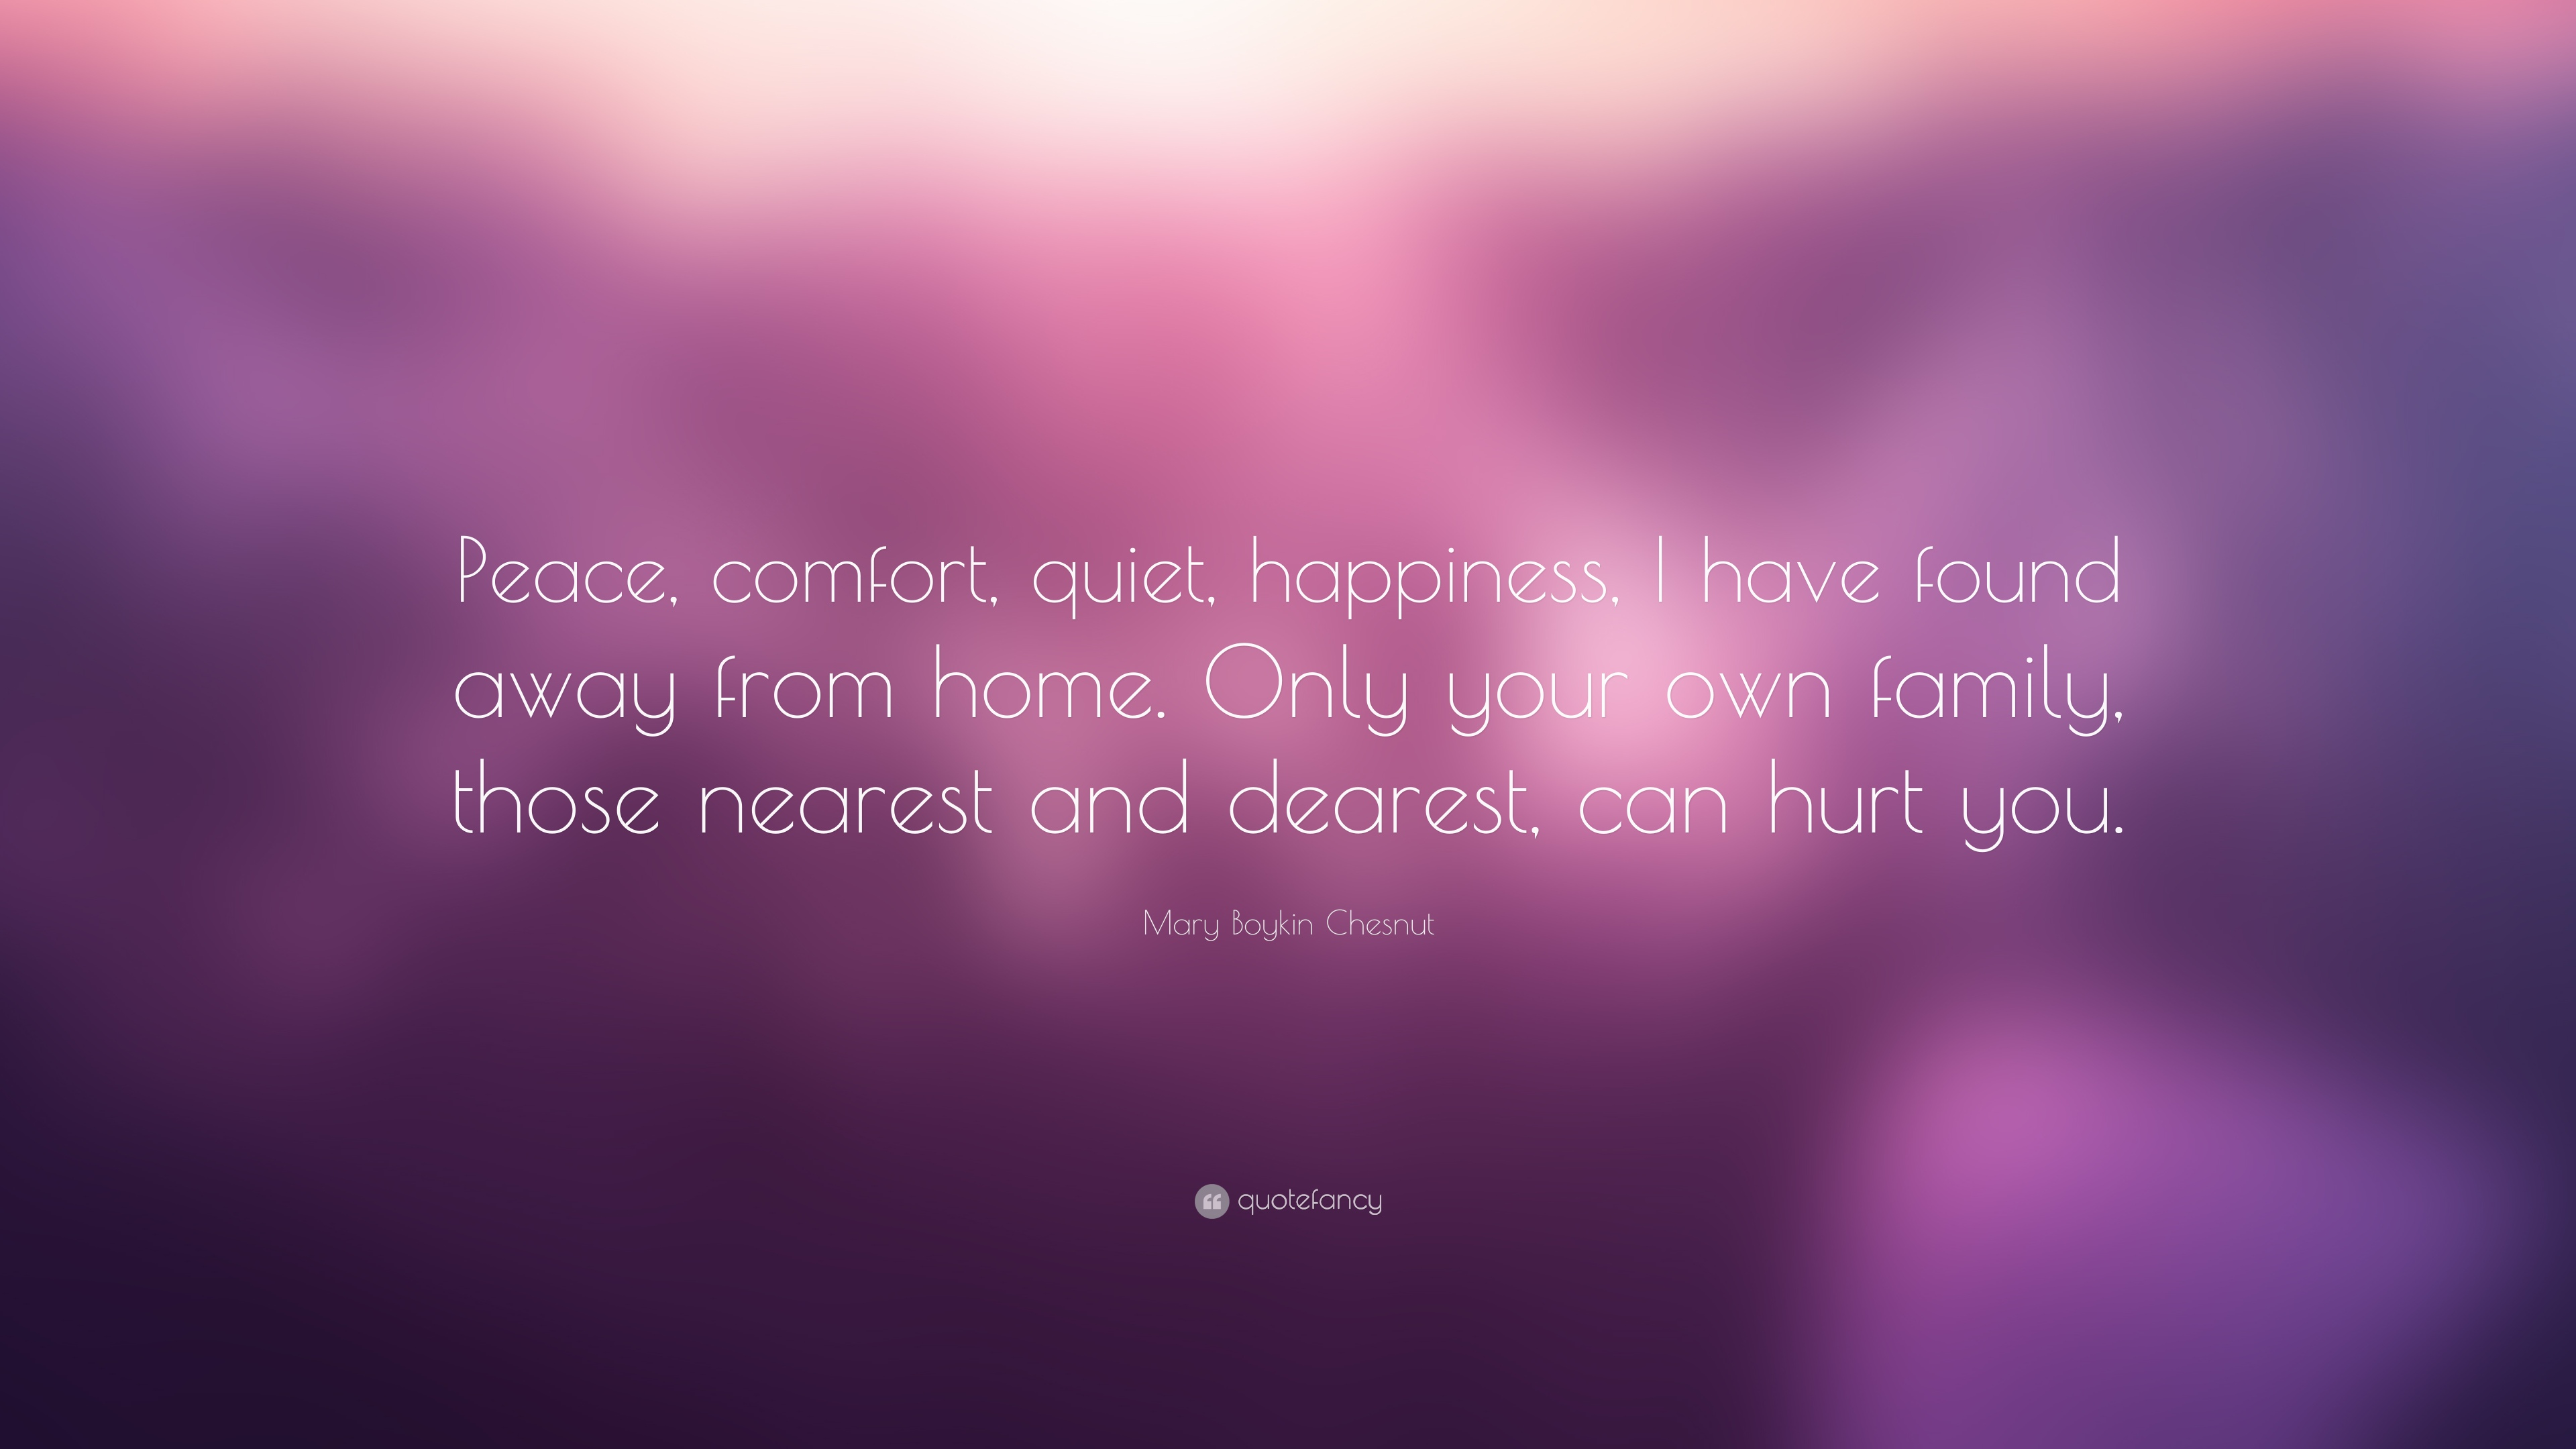 Mary Boykin Chesnut Quote: U201cPeace, Comfort, Quiet, Happiness, I Have